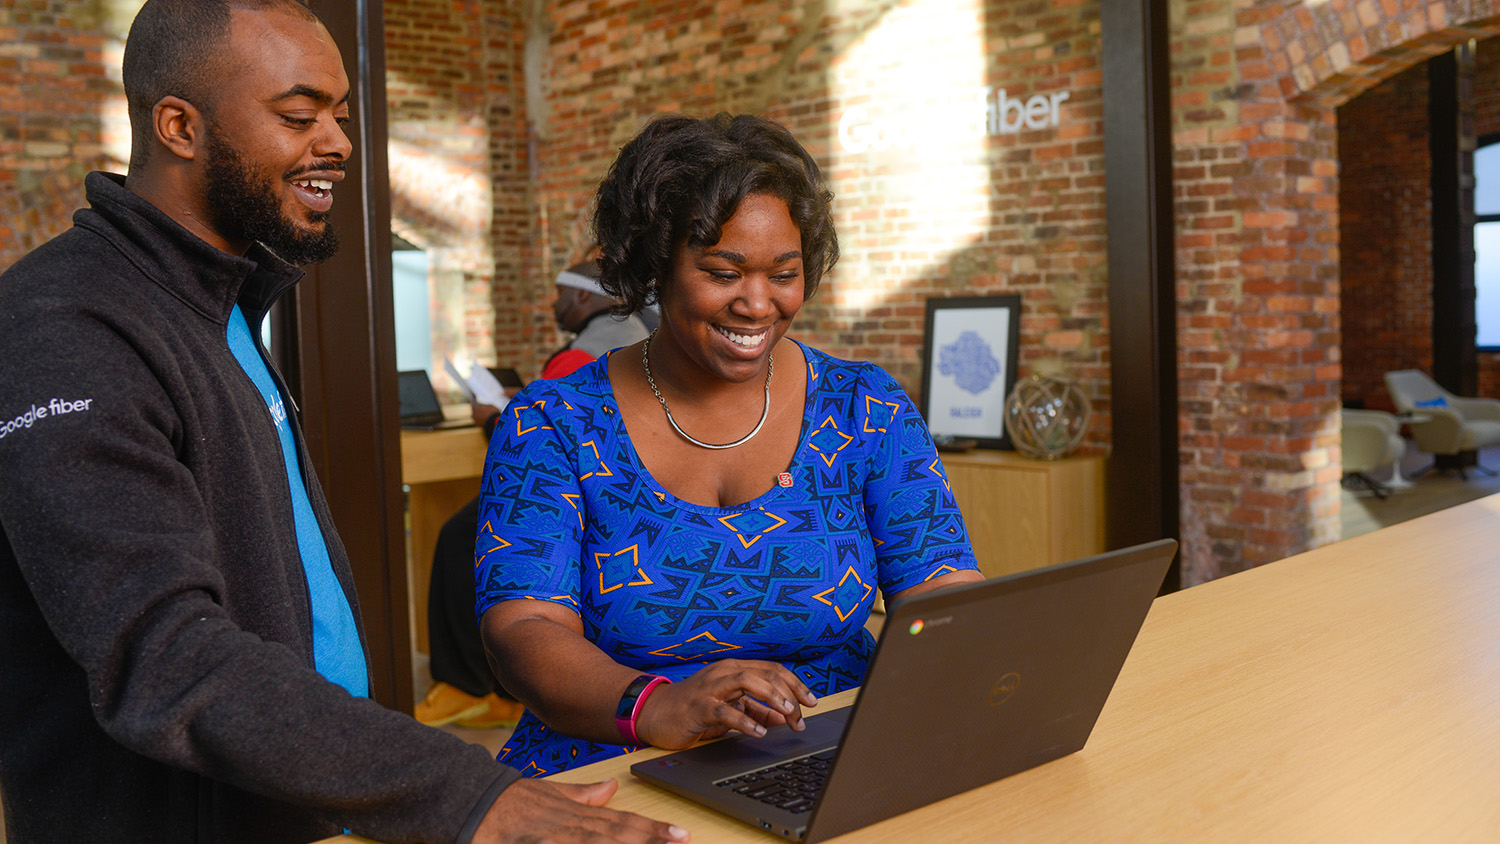 Tia Bethea interacts with a coworker at Google Fiber